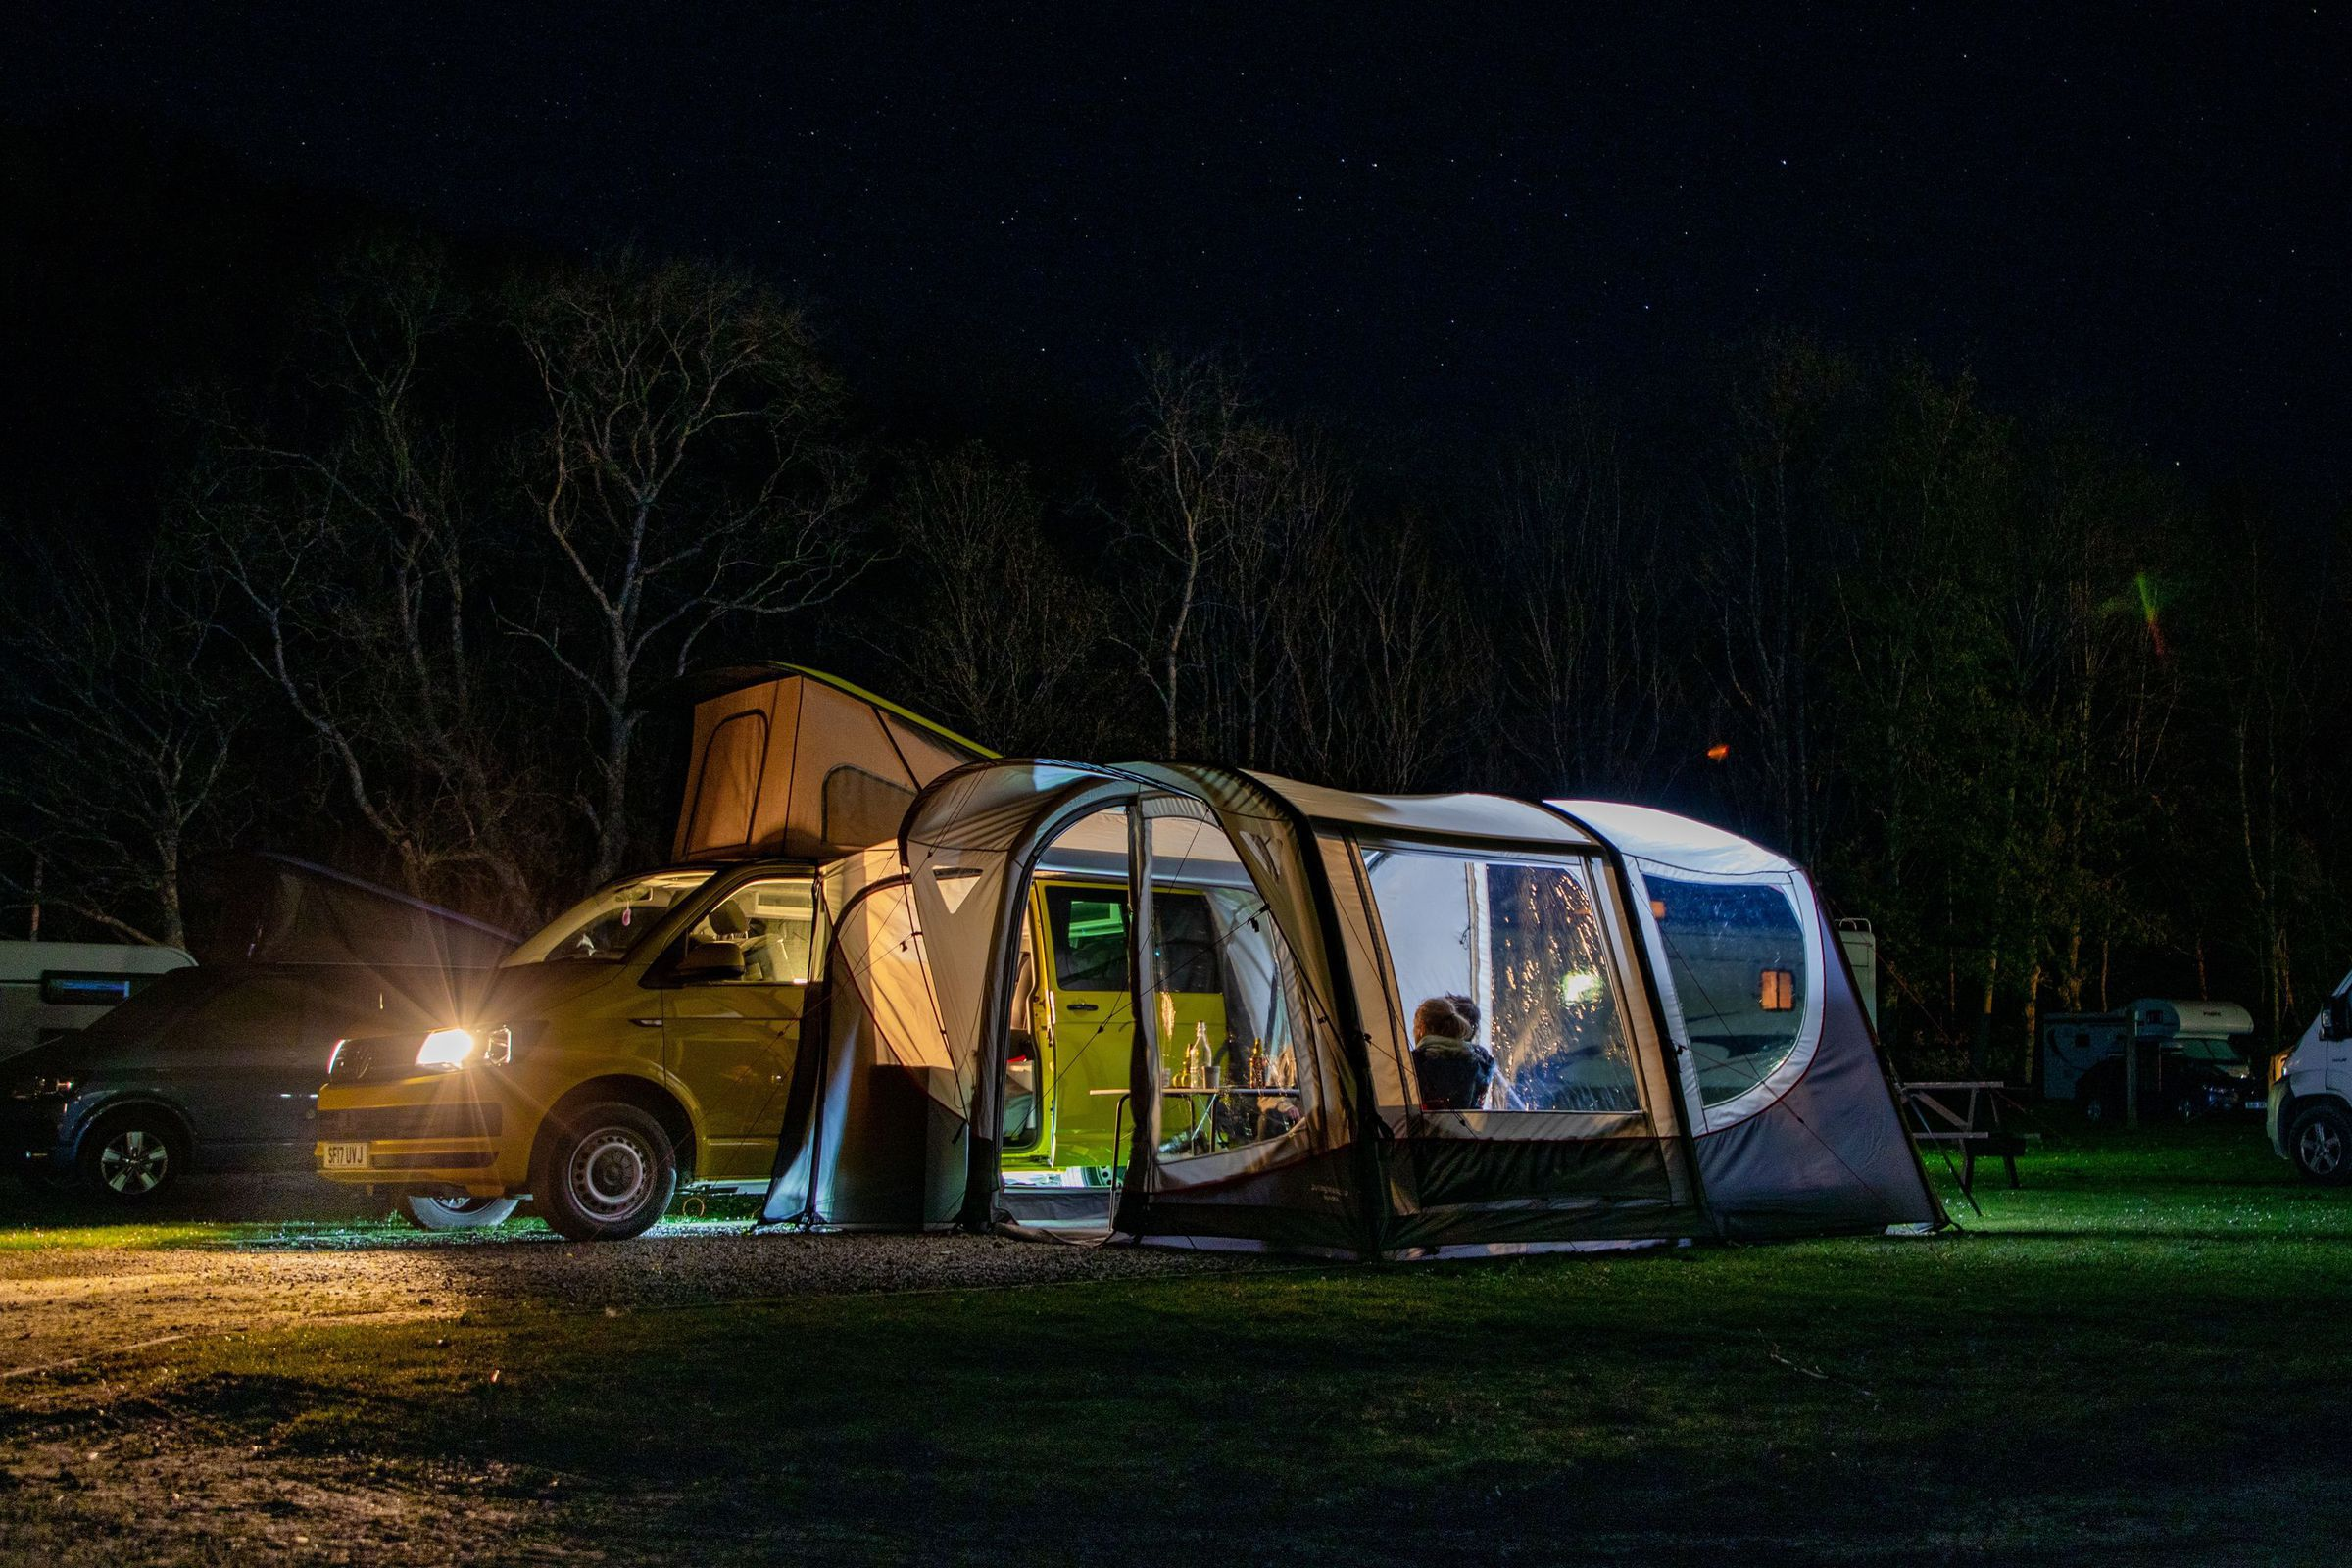 Vango Magra Vw Low Driveaway Awning Norwich Camping15